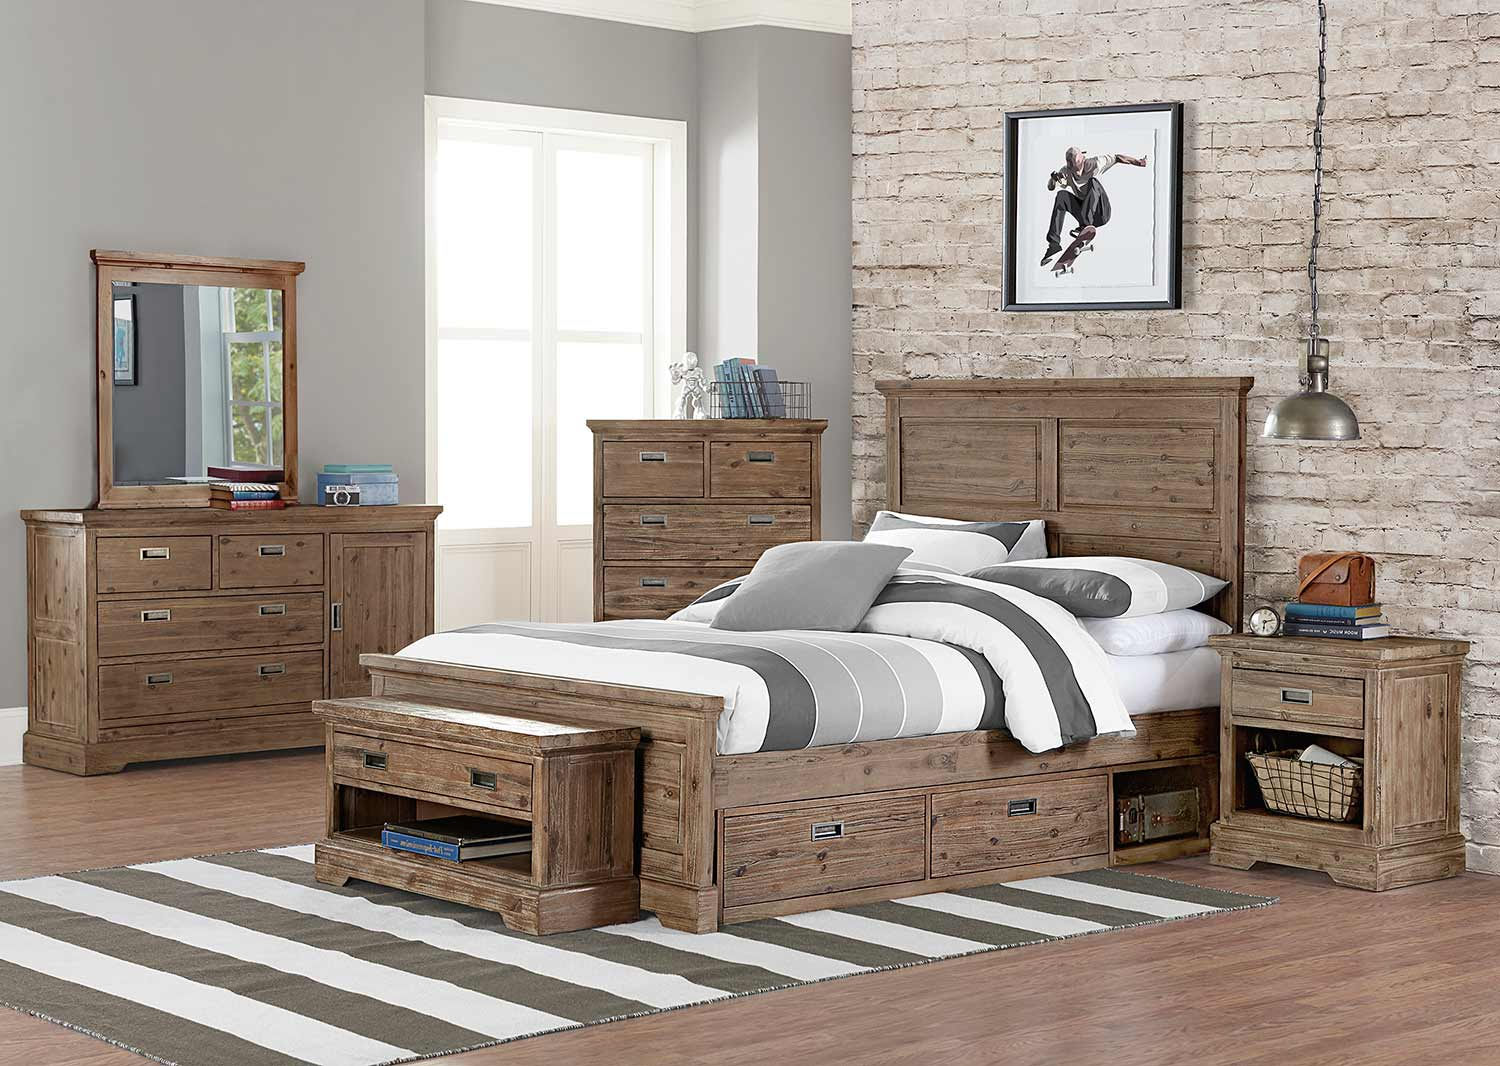 NE Kids Oxford William Panel Bedroom Set With Storage - Cocoa